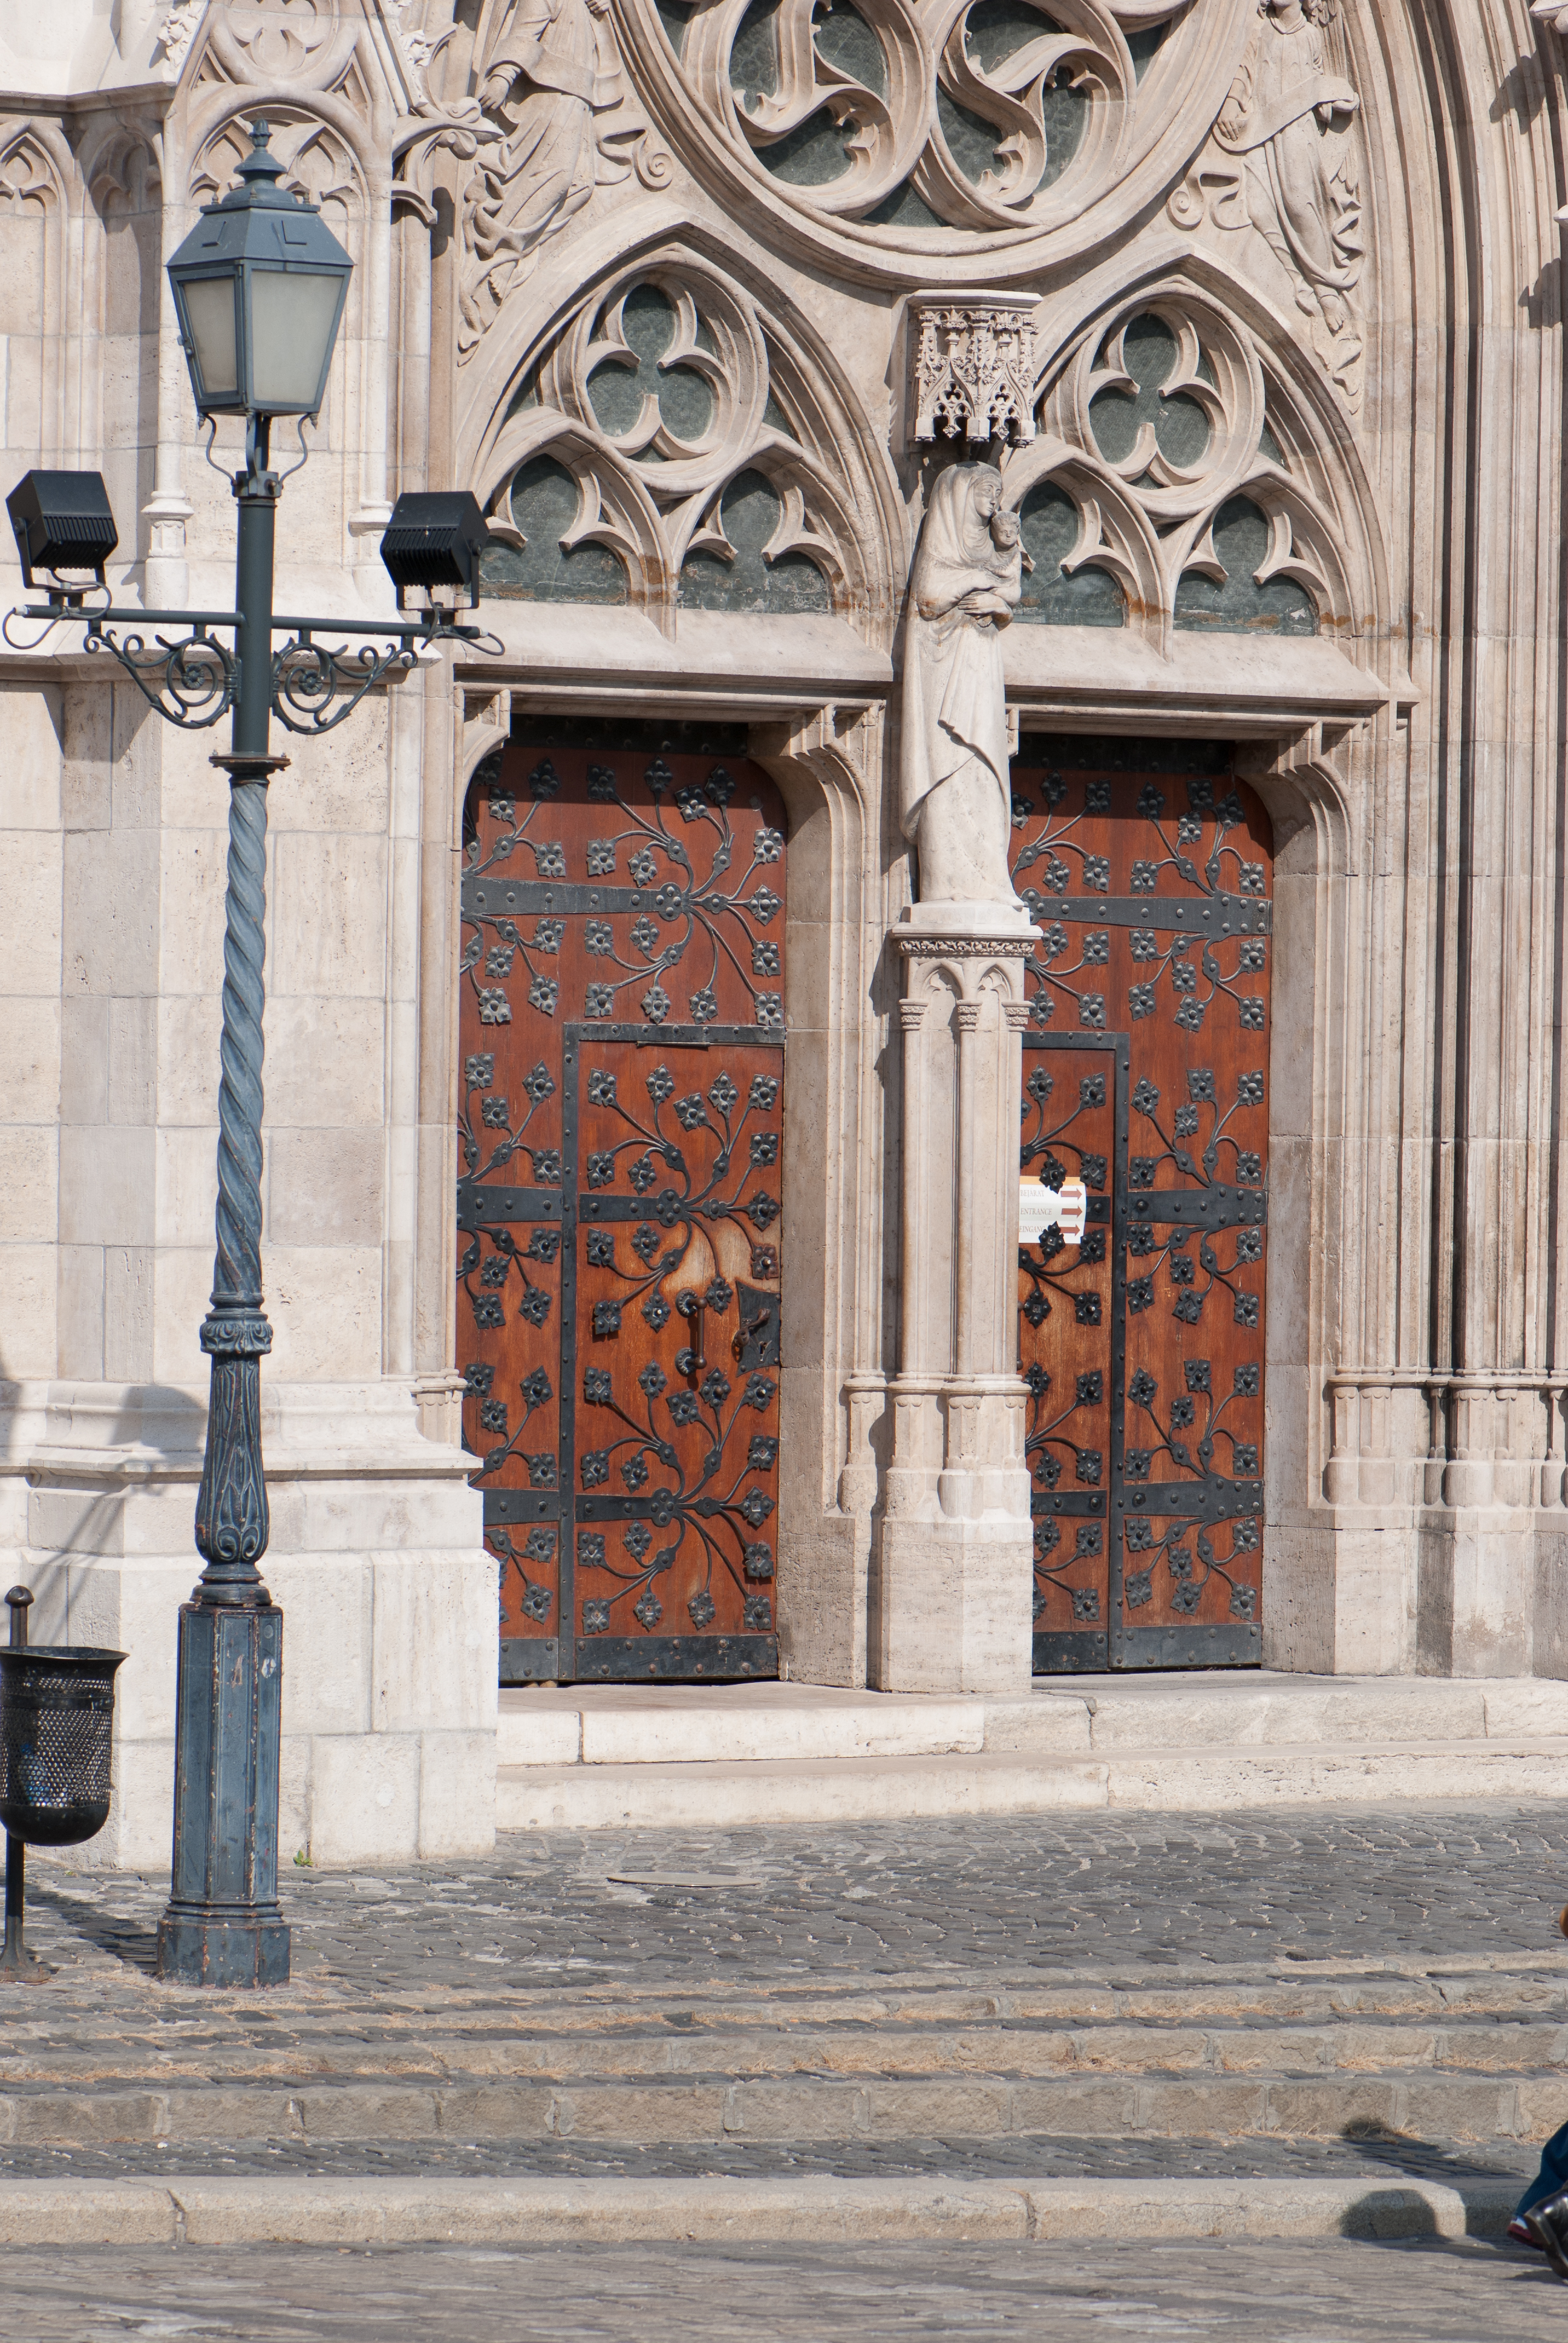 FileCathedral doors (16119916900).jpg & File:Cathedral doors (16119916900).jpg - Wikimedia Commons